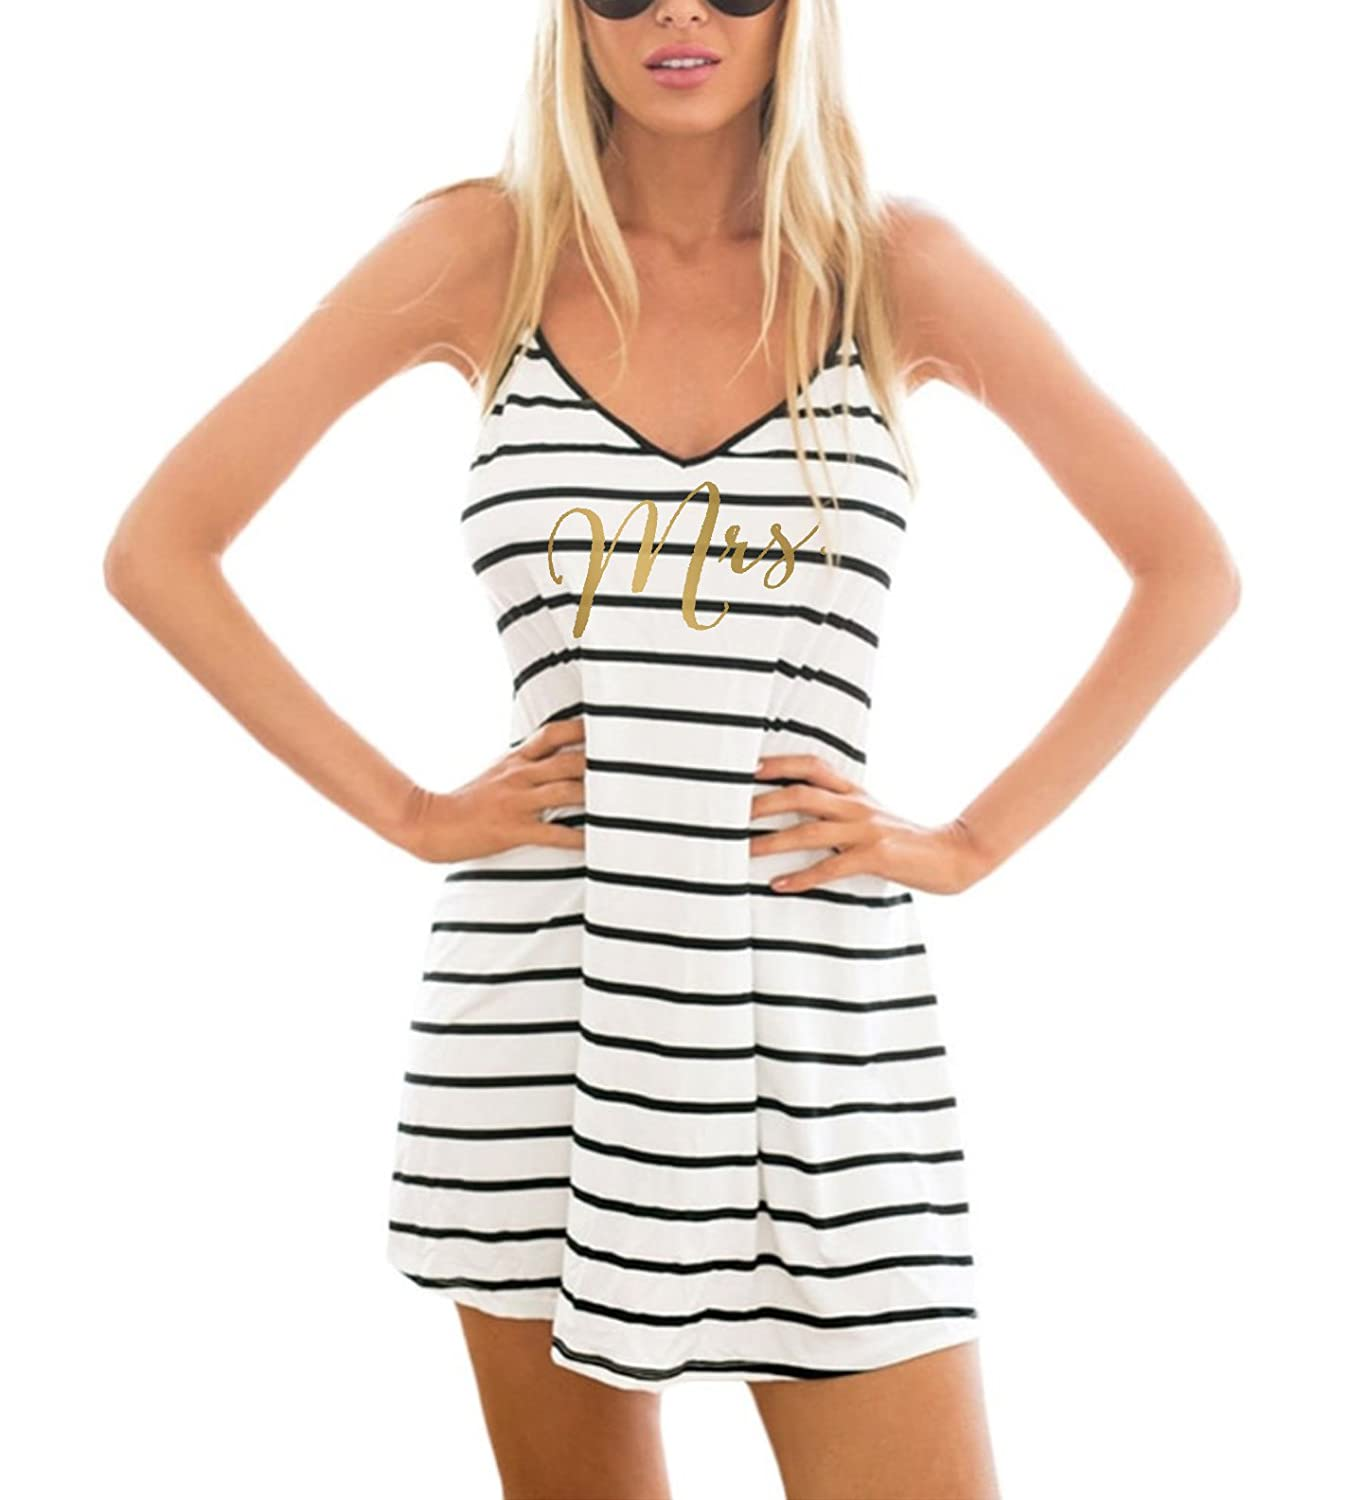 8061b1f73e It's Your Day Clothing Gold Mrs. Striped Swimsuit Cover Up Honeymoon Bride  Beach Dress at Amazon Women's Clothing store: